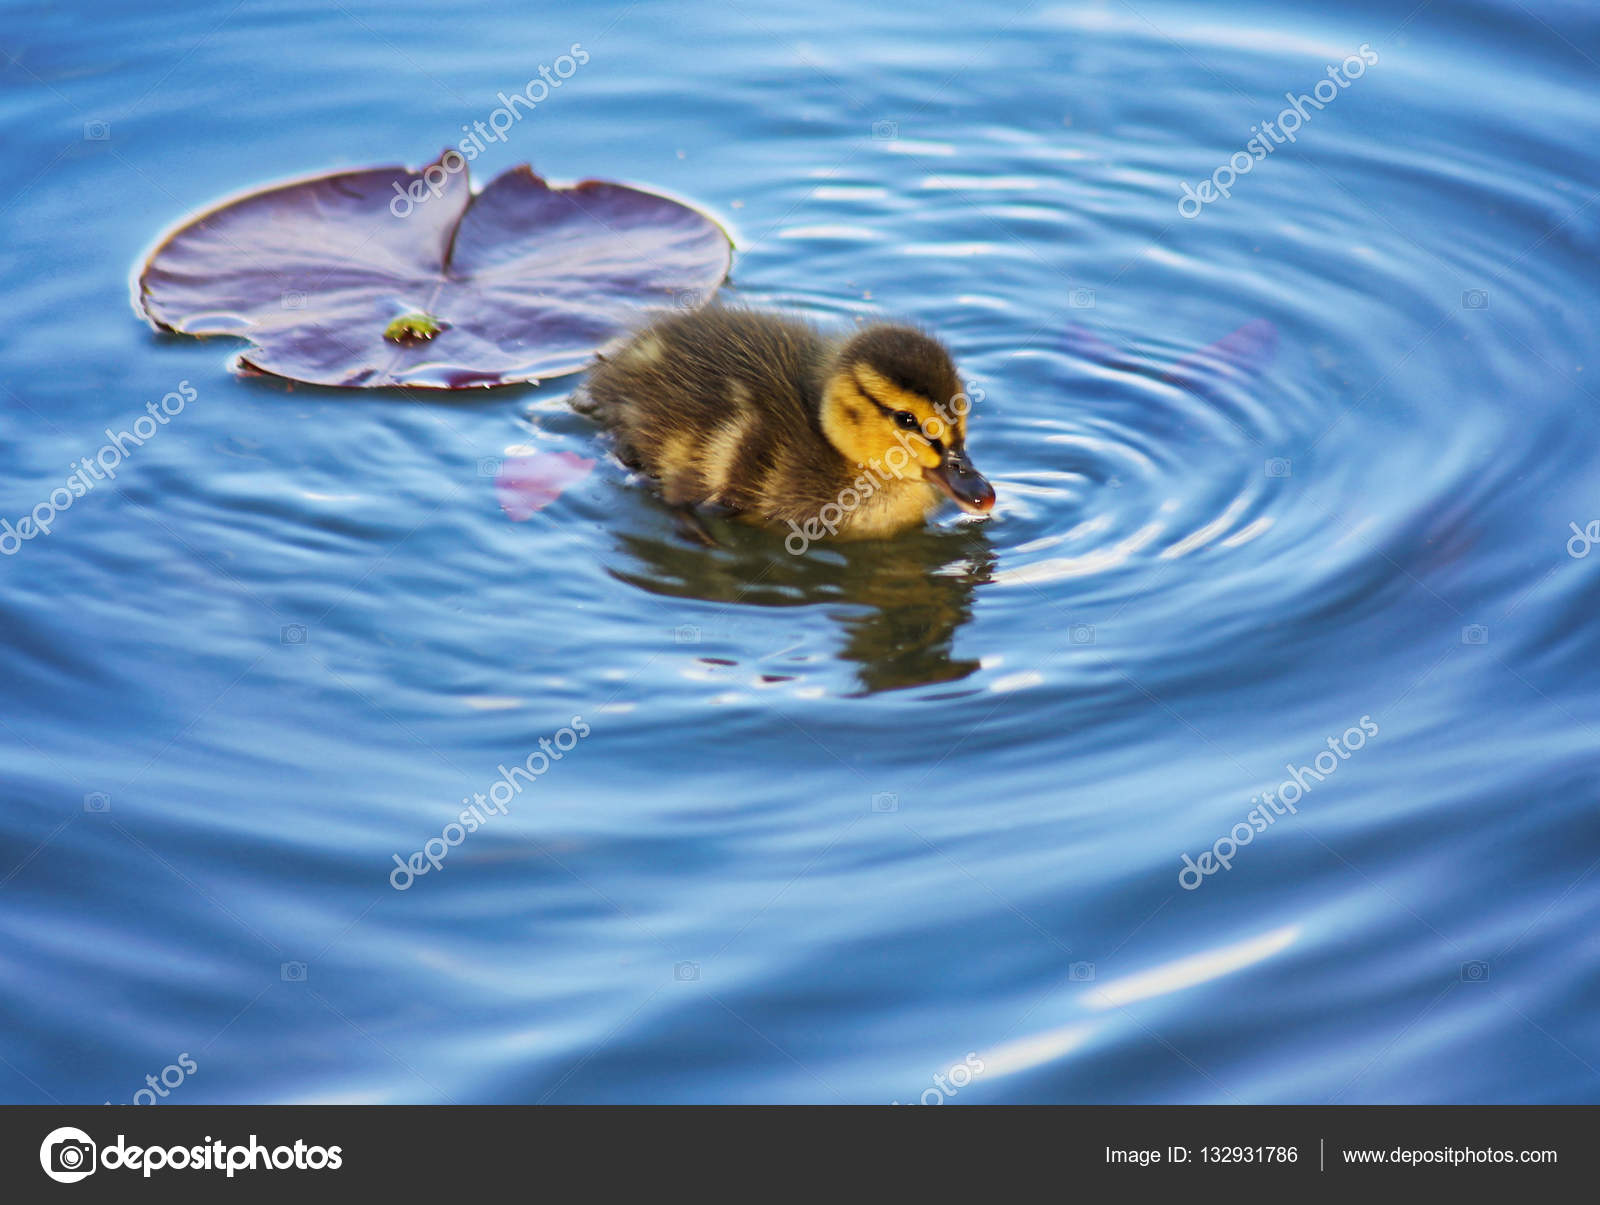 baby duckling swimming in a pond — Stock Photo © graphicphoto #132931786